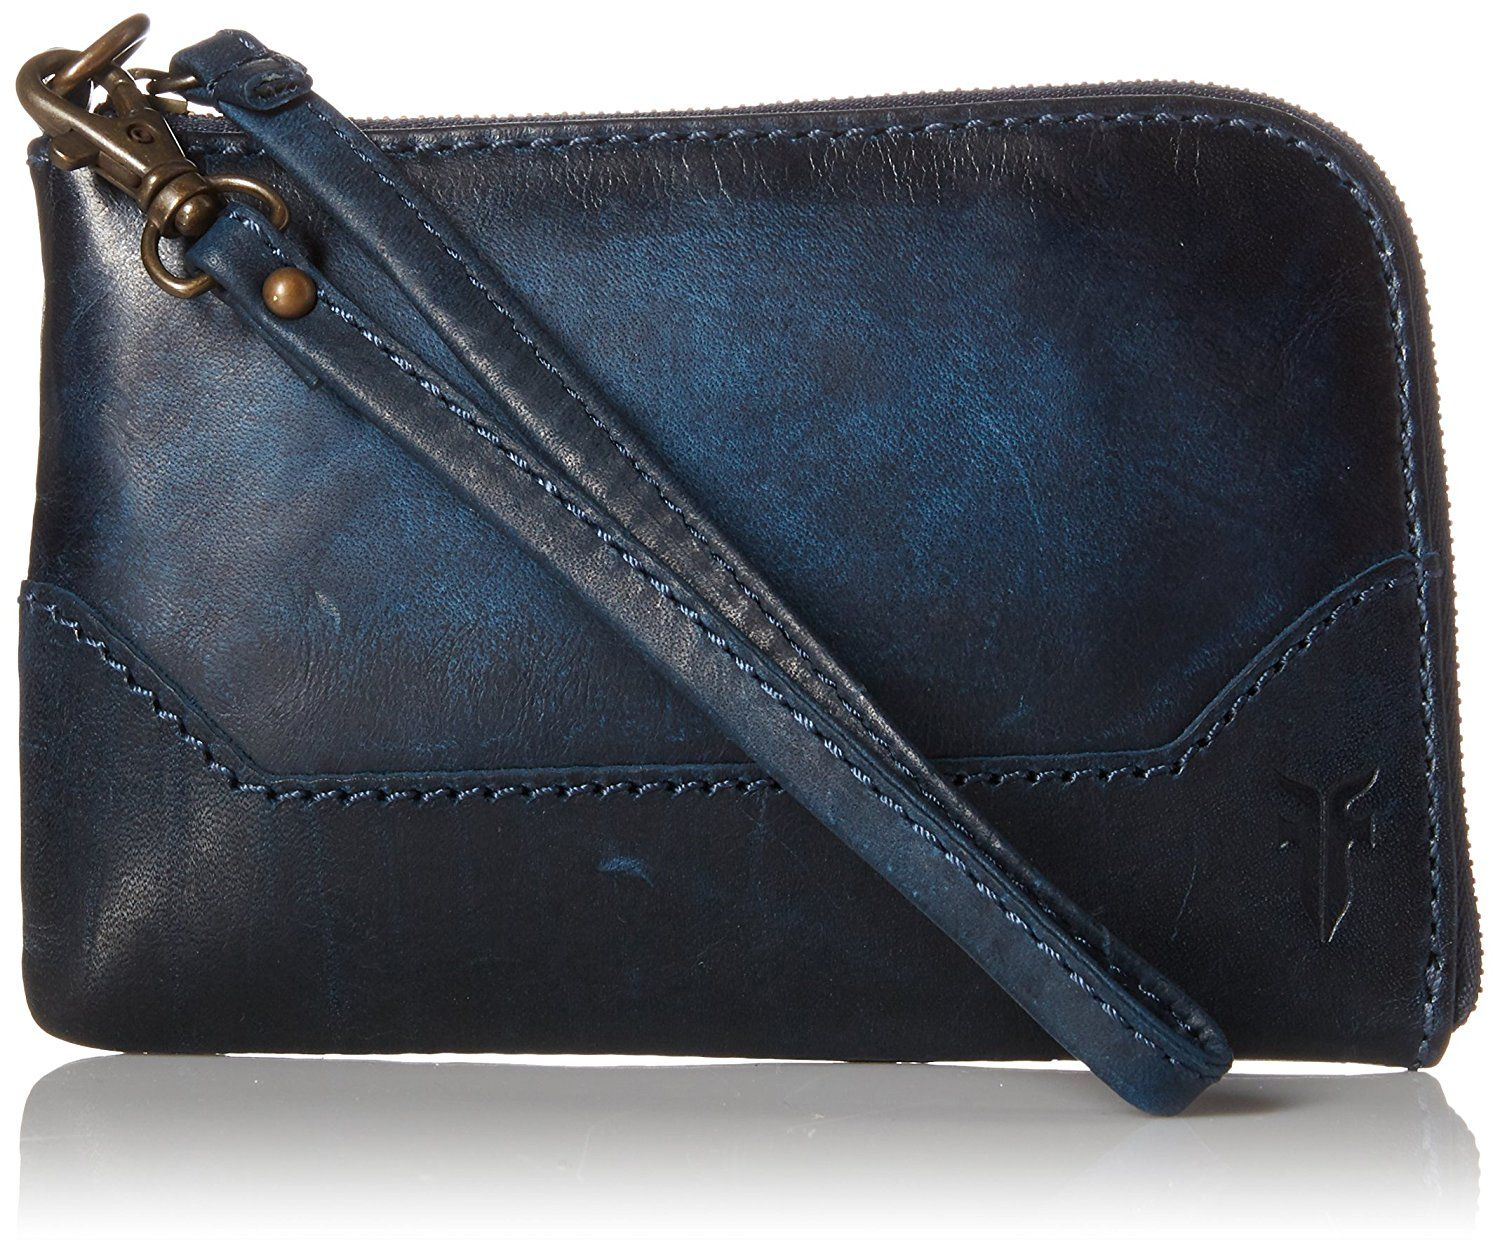 VIDA Leather Statement Clutch - Susan Ringer Fine Art by VIDA qppDsn2ms